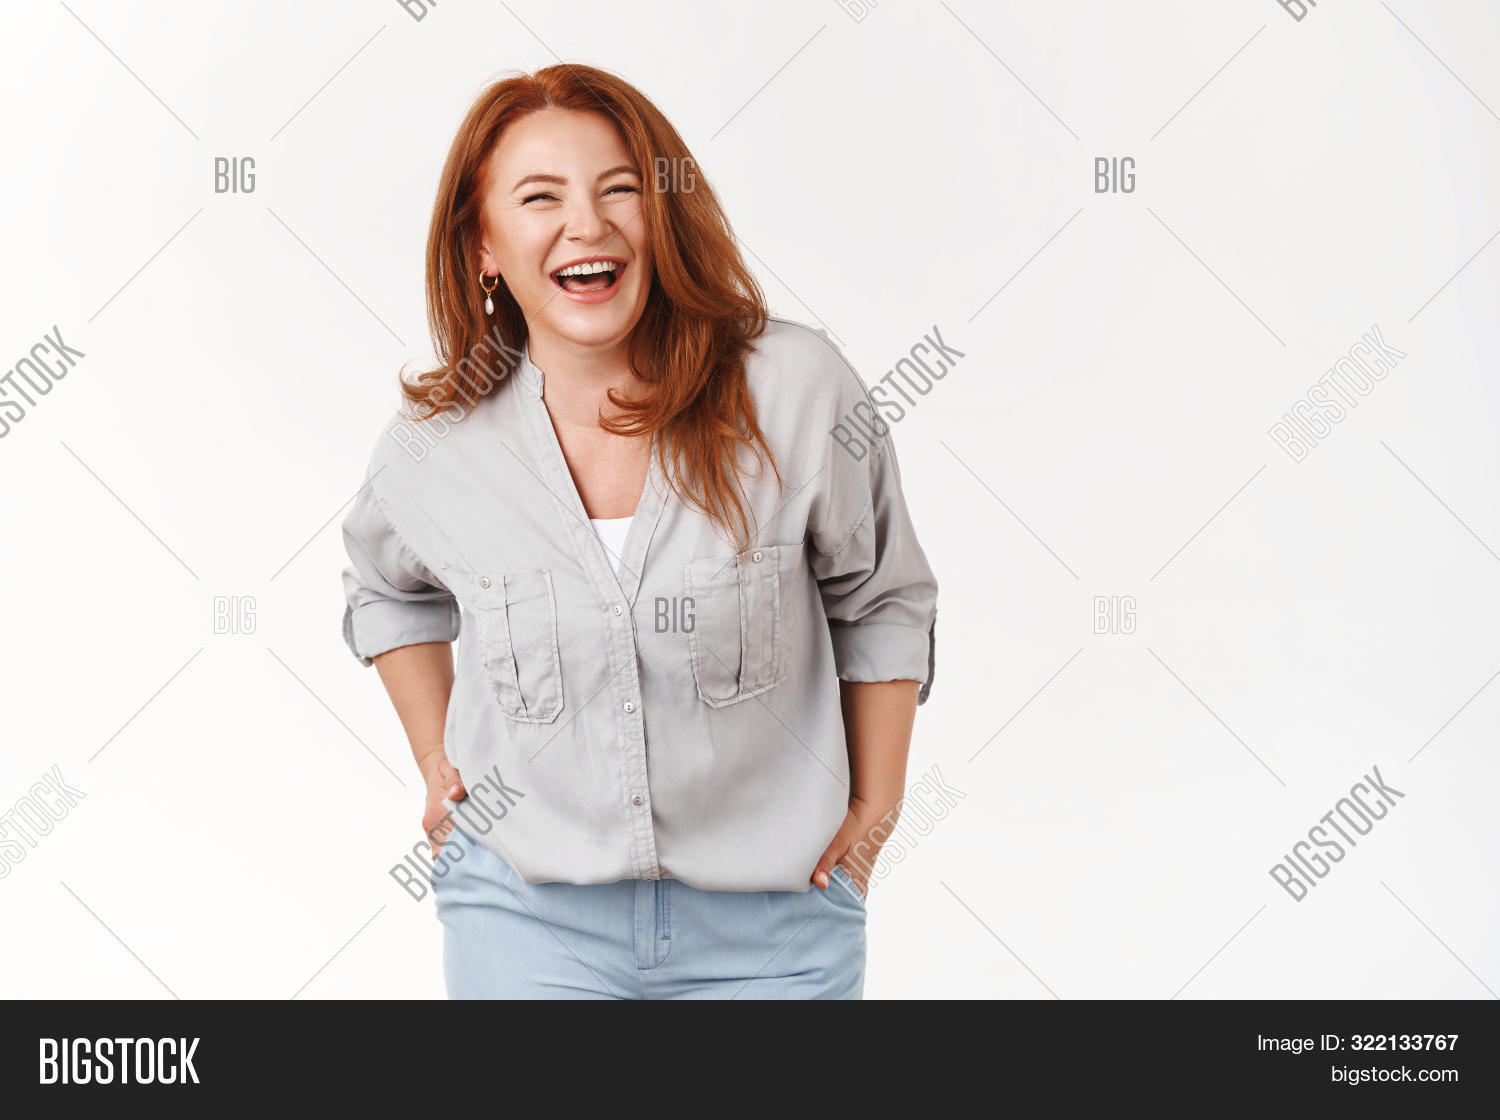 Wrinkles What. Charming Carefree Middle-aged 50s Redhead Woman Laughing Happily Having Fun Good Mood